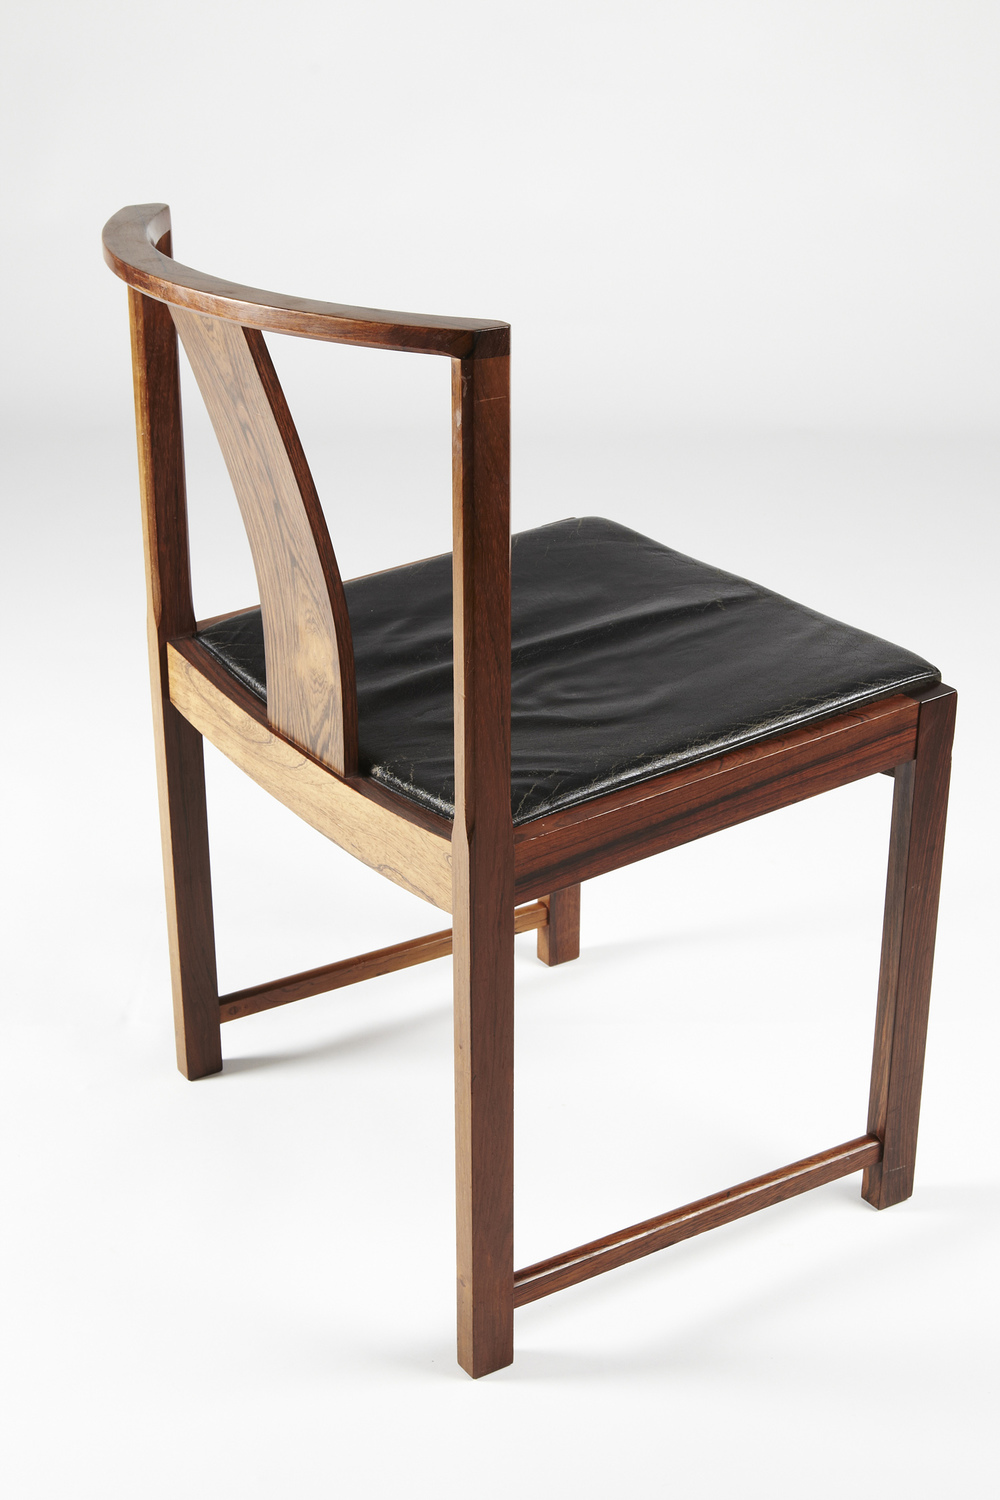 S E Rasmussen 1955 Dining Chair • made 1955-69 •